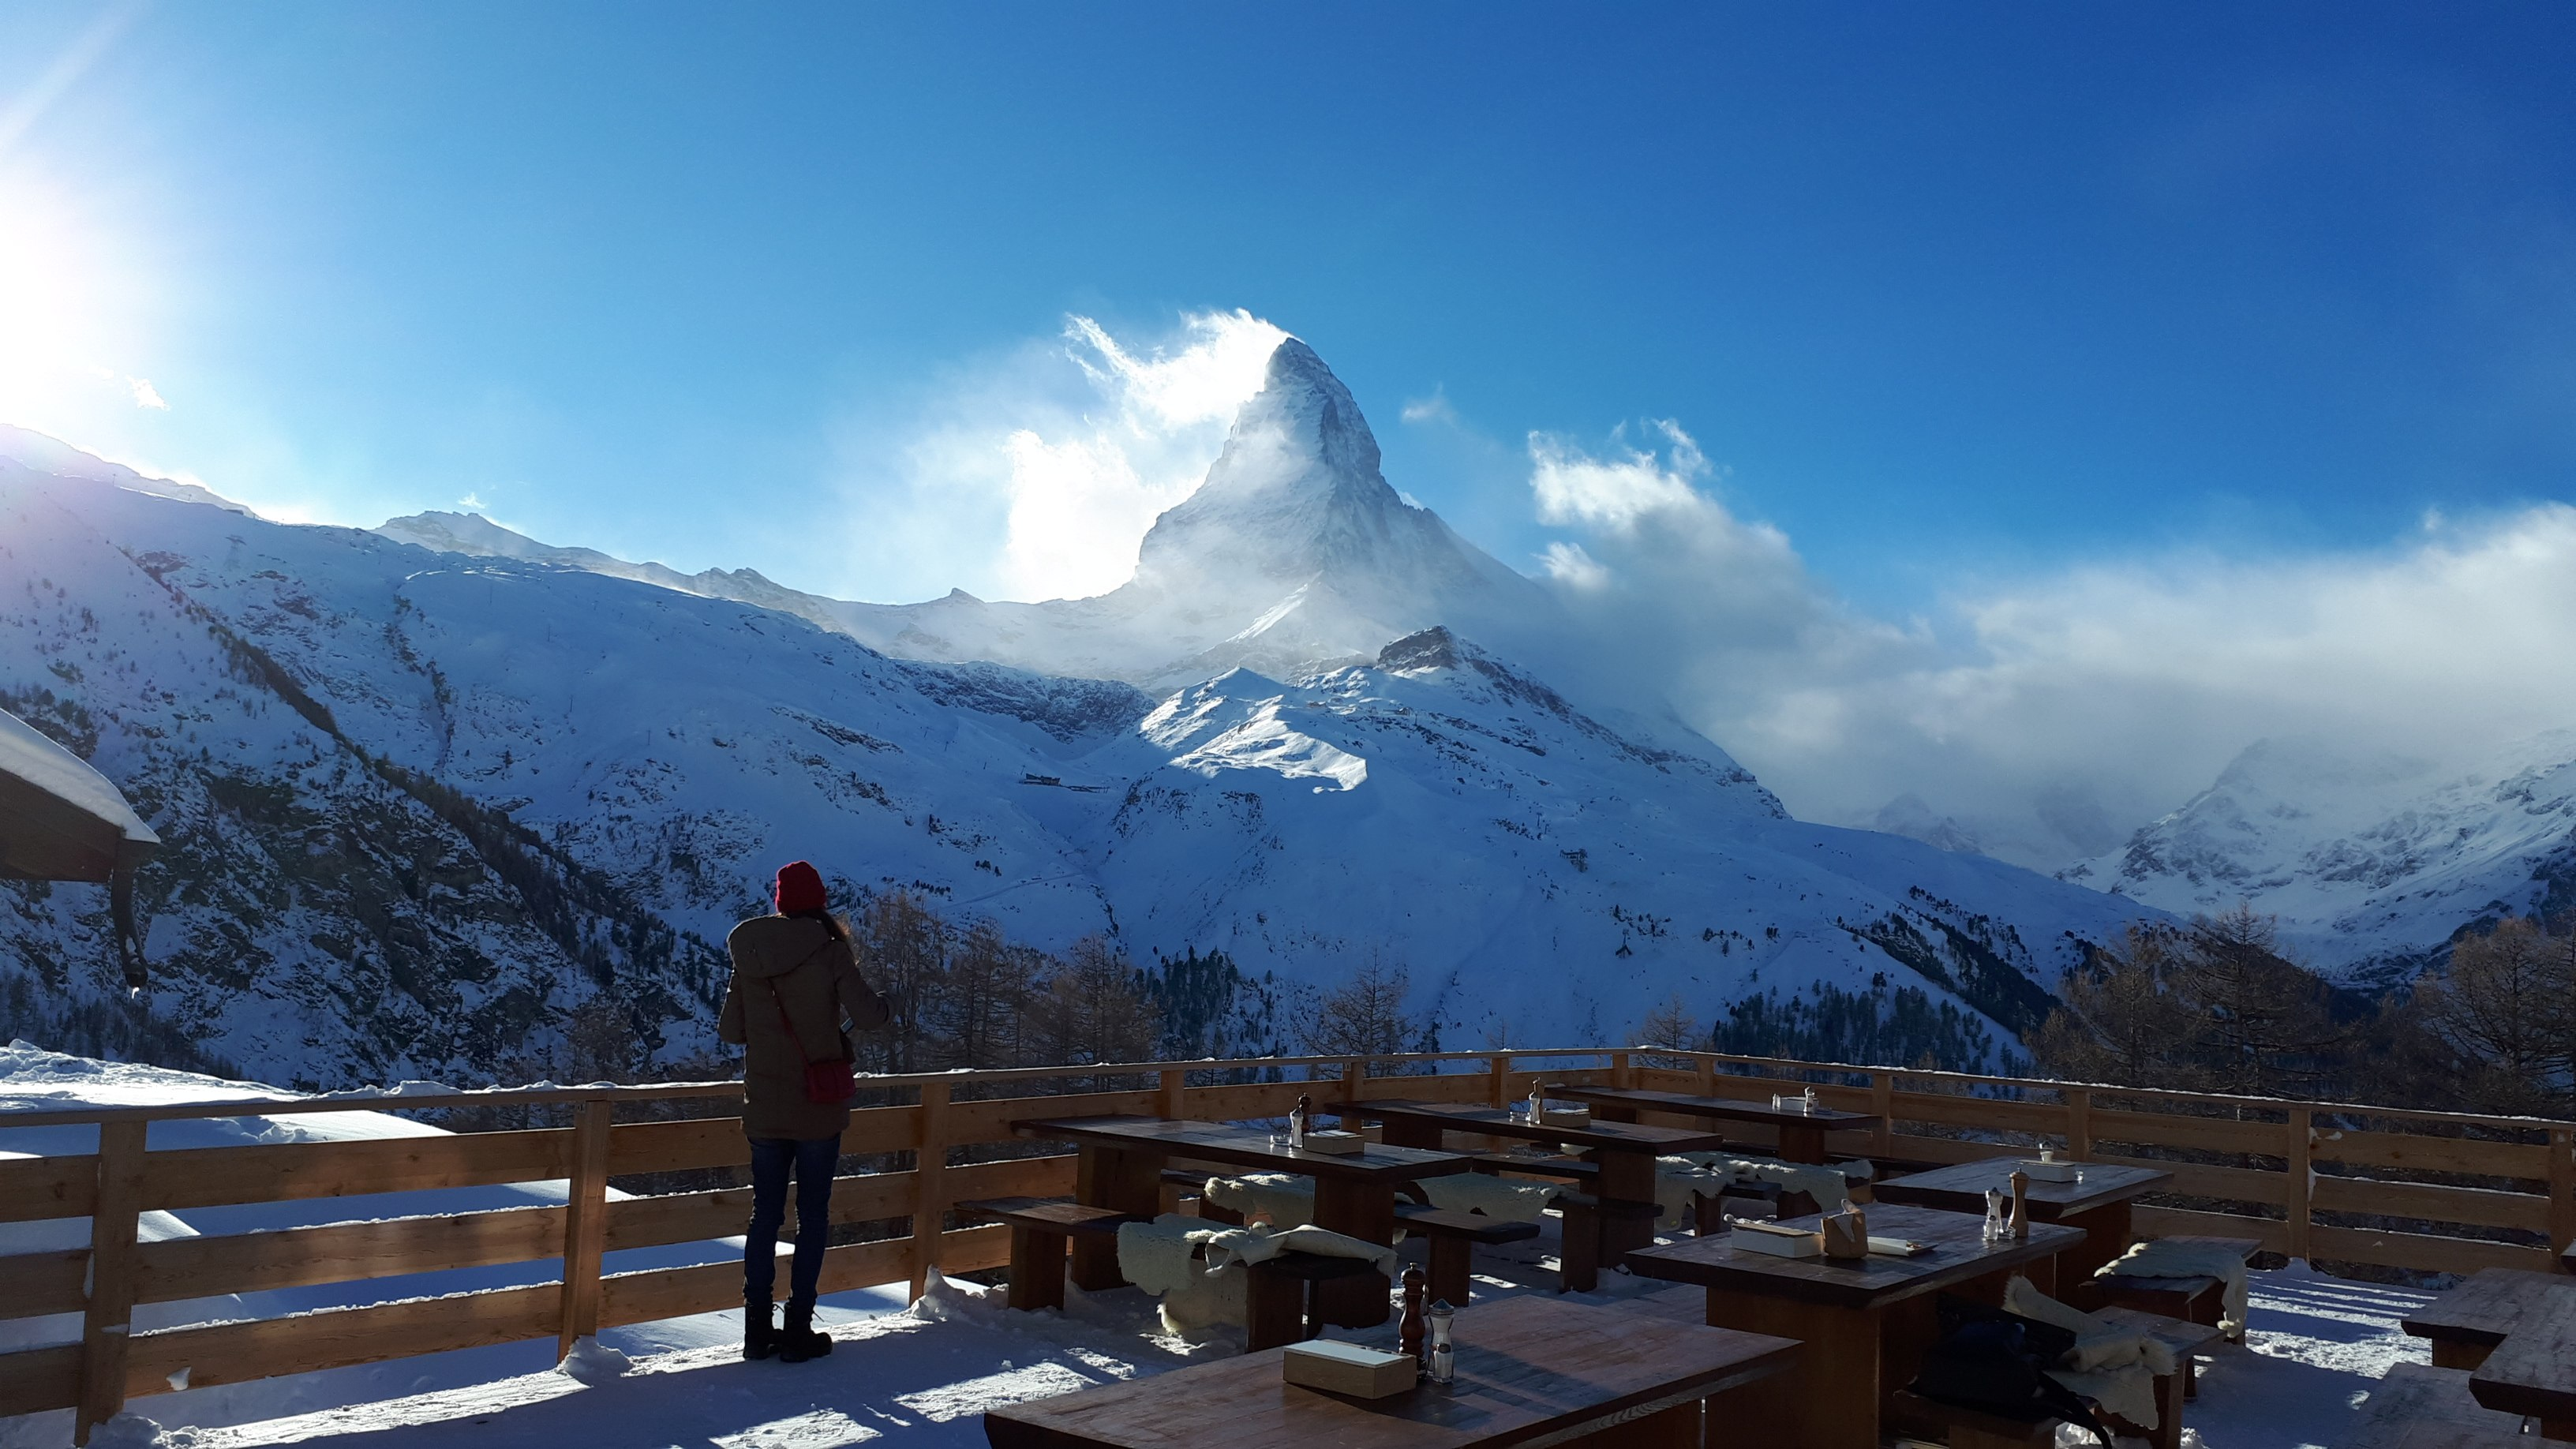 ski touring with the view from the Alphitta restaurant